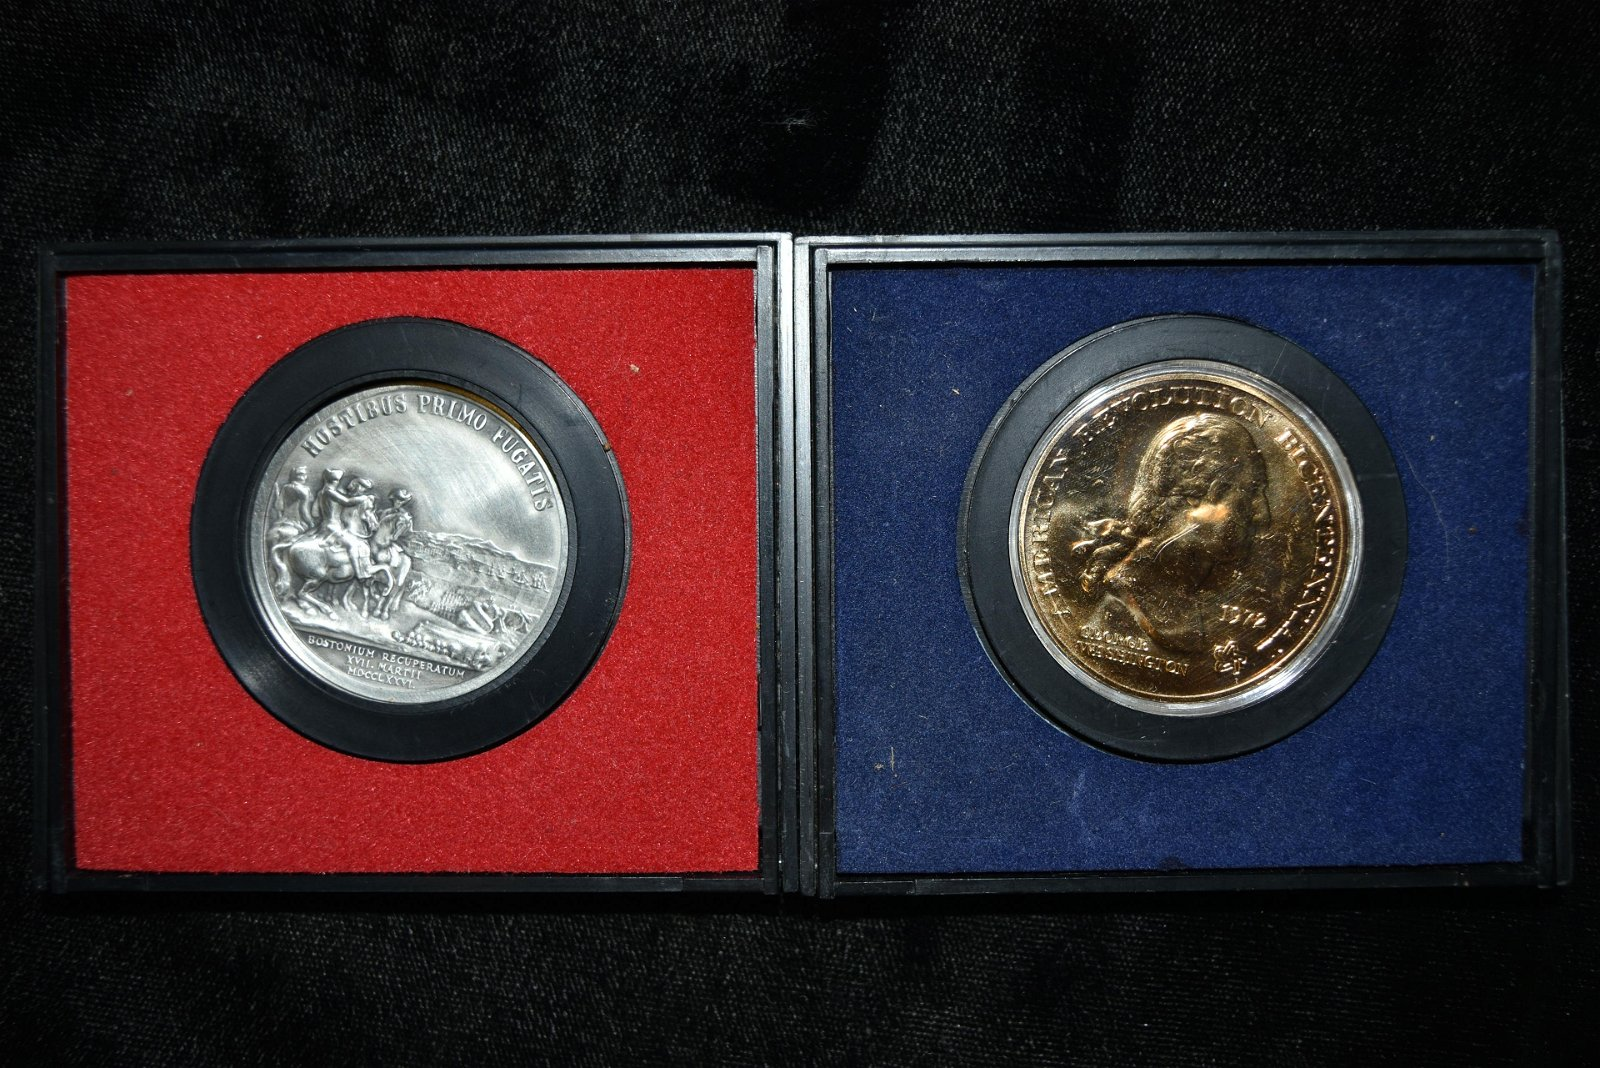 Two American Revolution bicentennial coins, in original